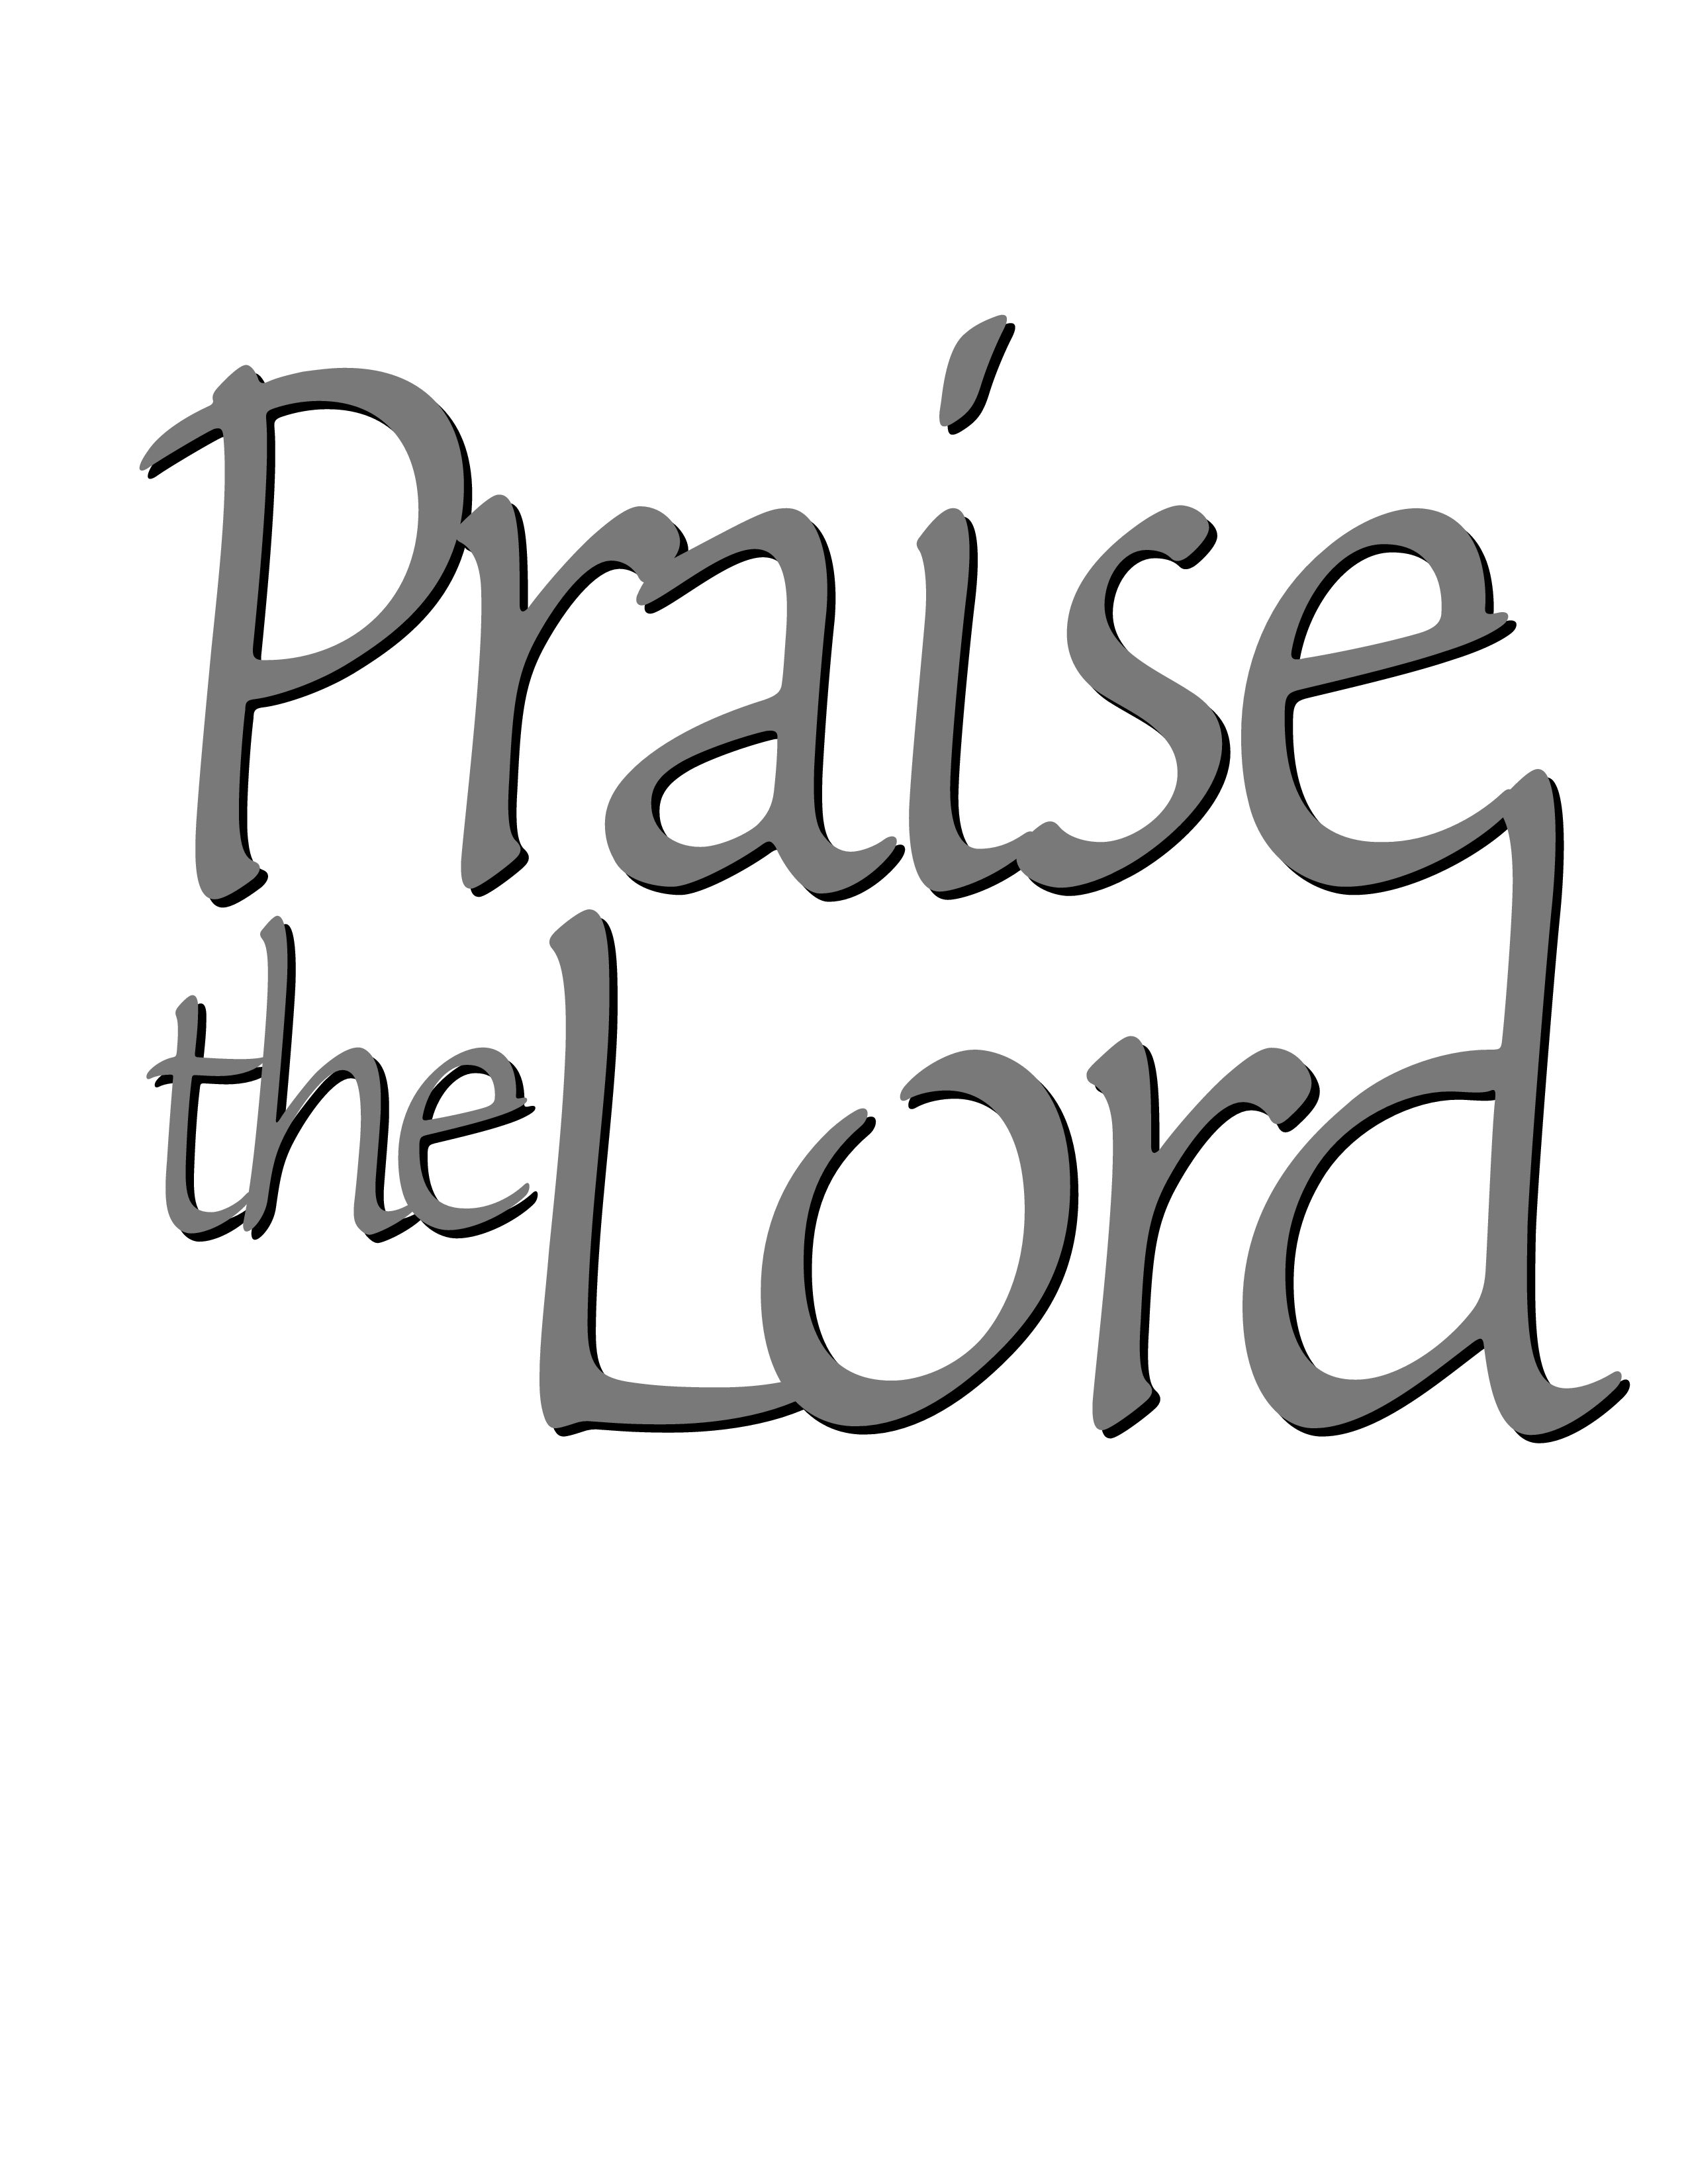 Free Praise Cliparts Download Free Clip Art Free Clip Art On Clipart Library